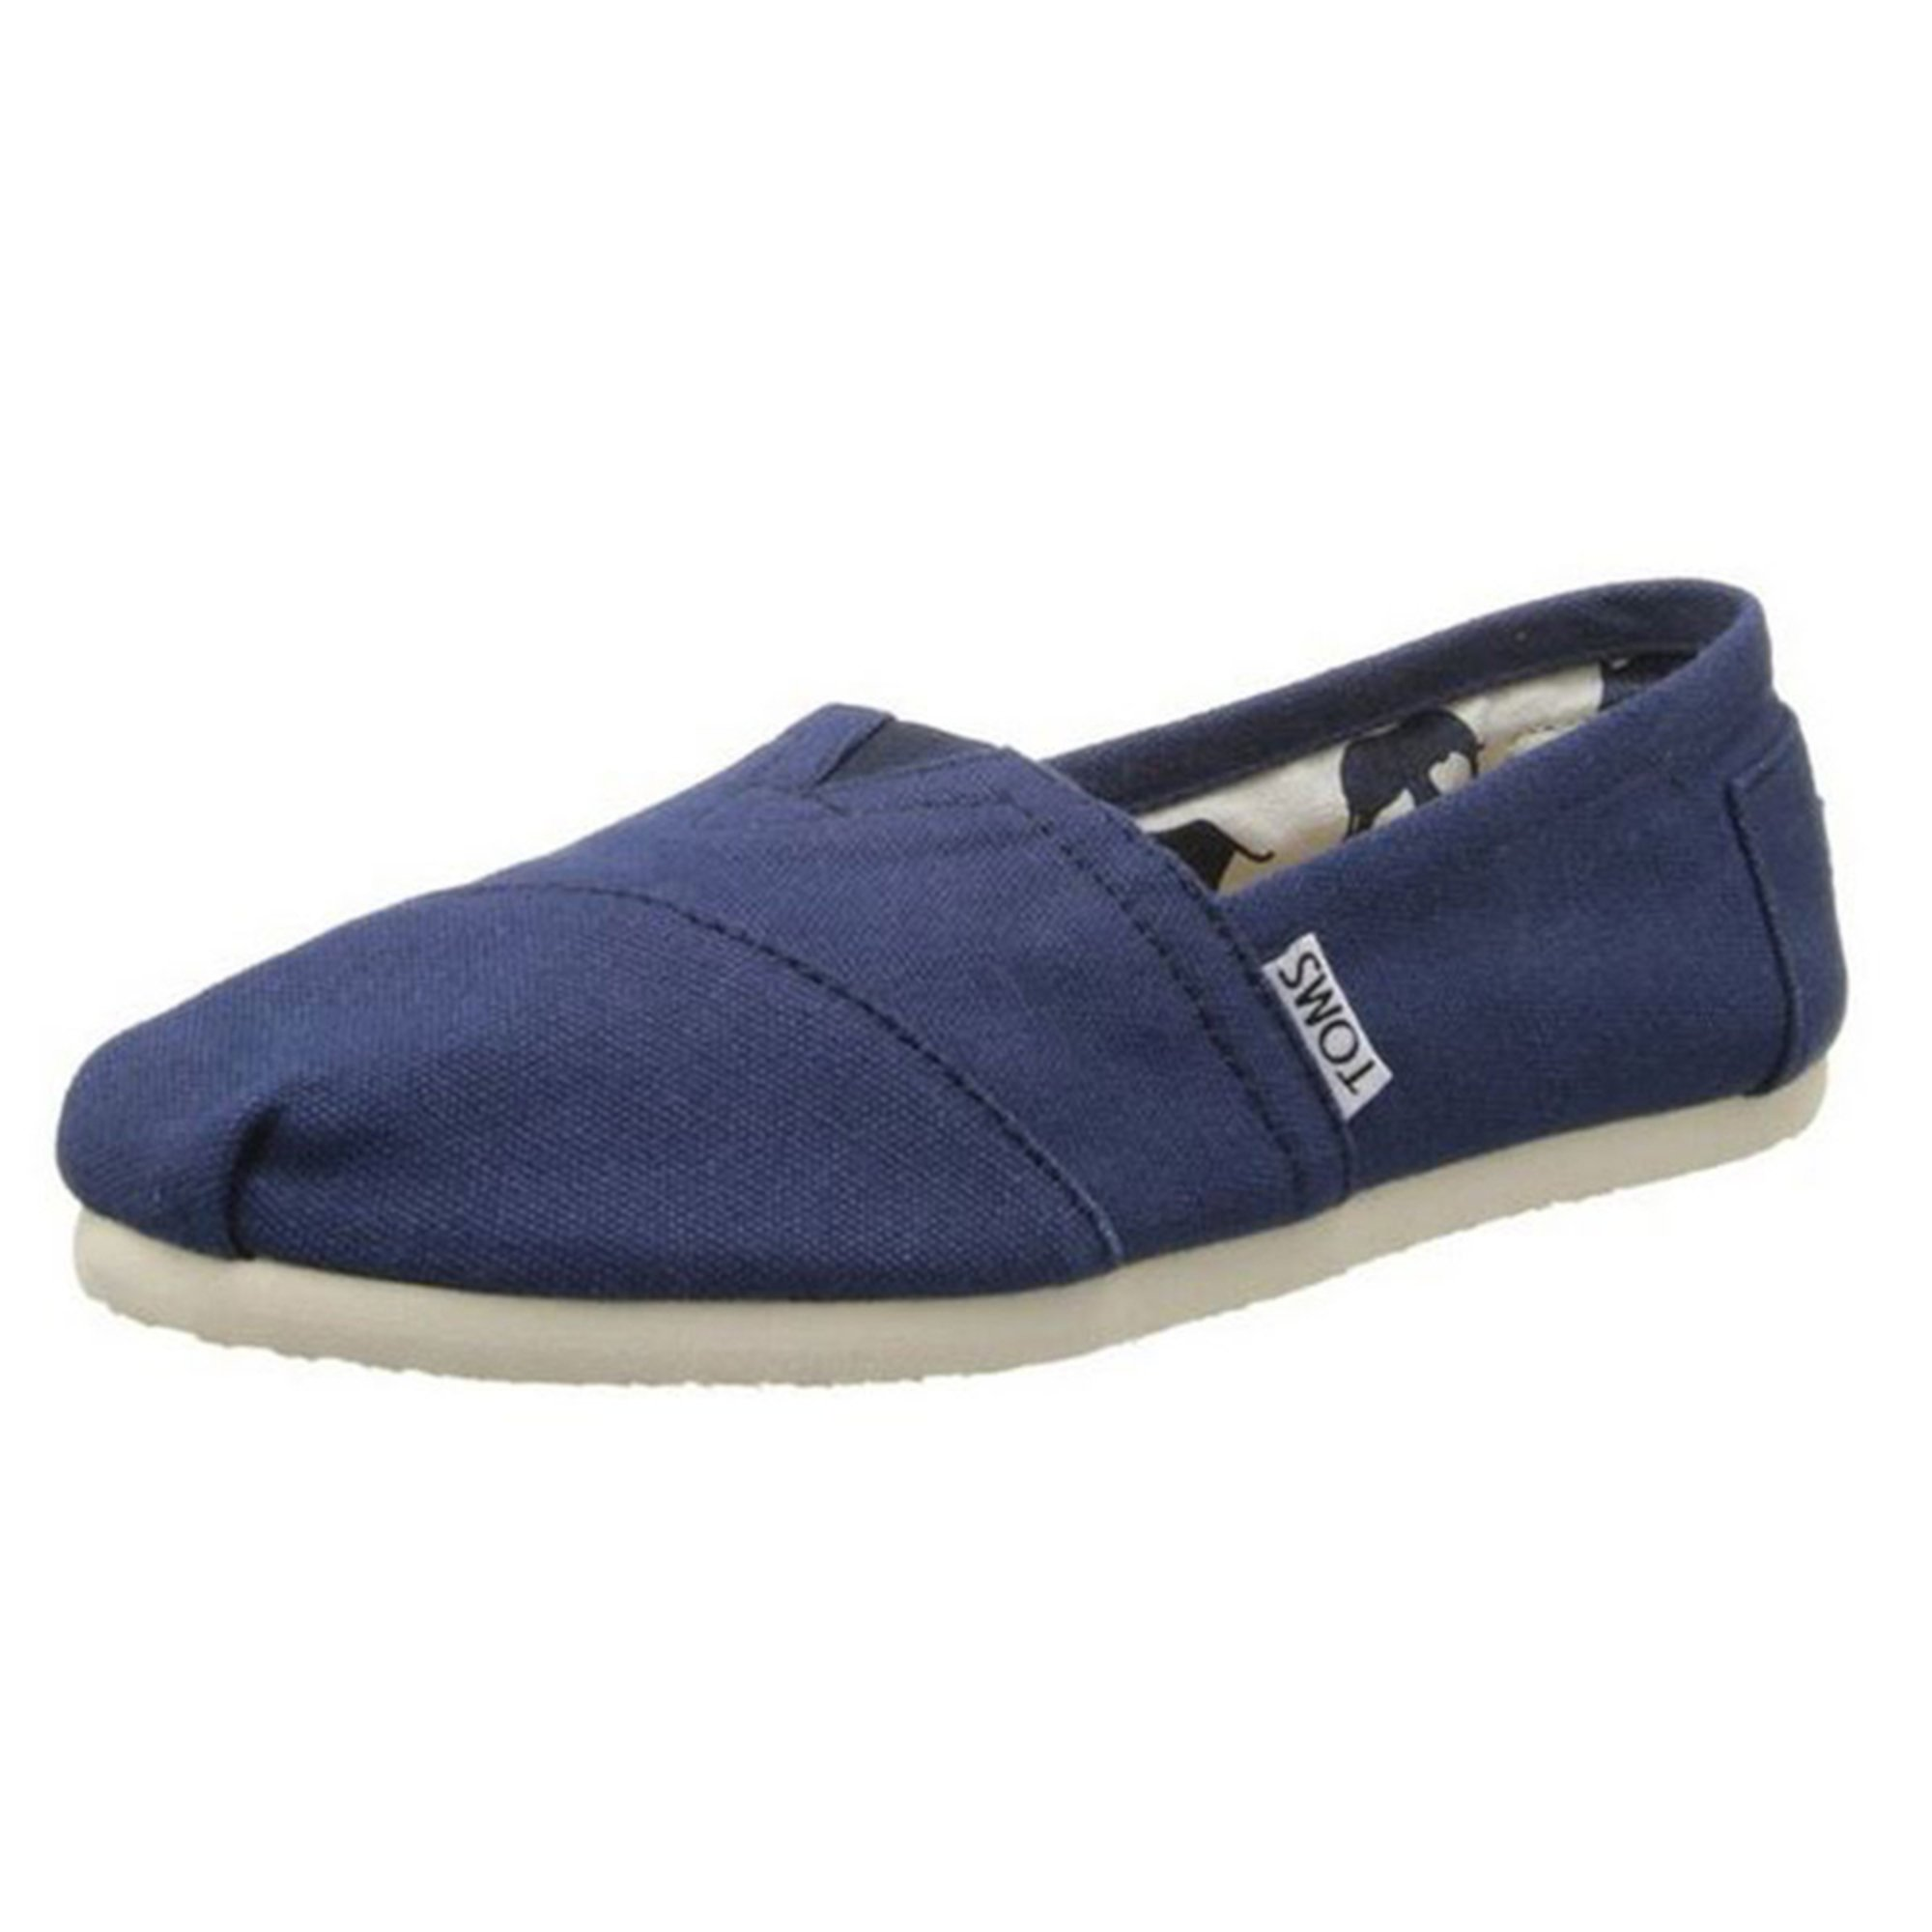 ed87163a77e42 Toms Women's Canvas Classic Slip On Shoe